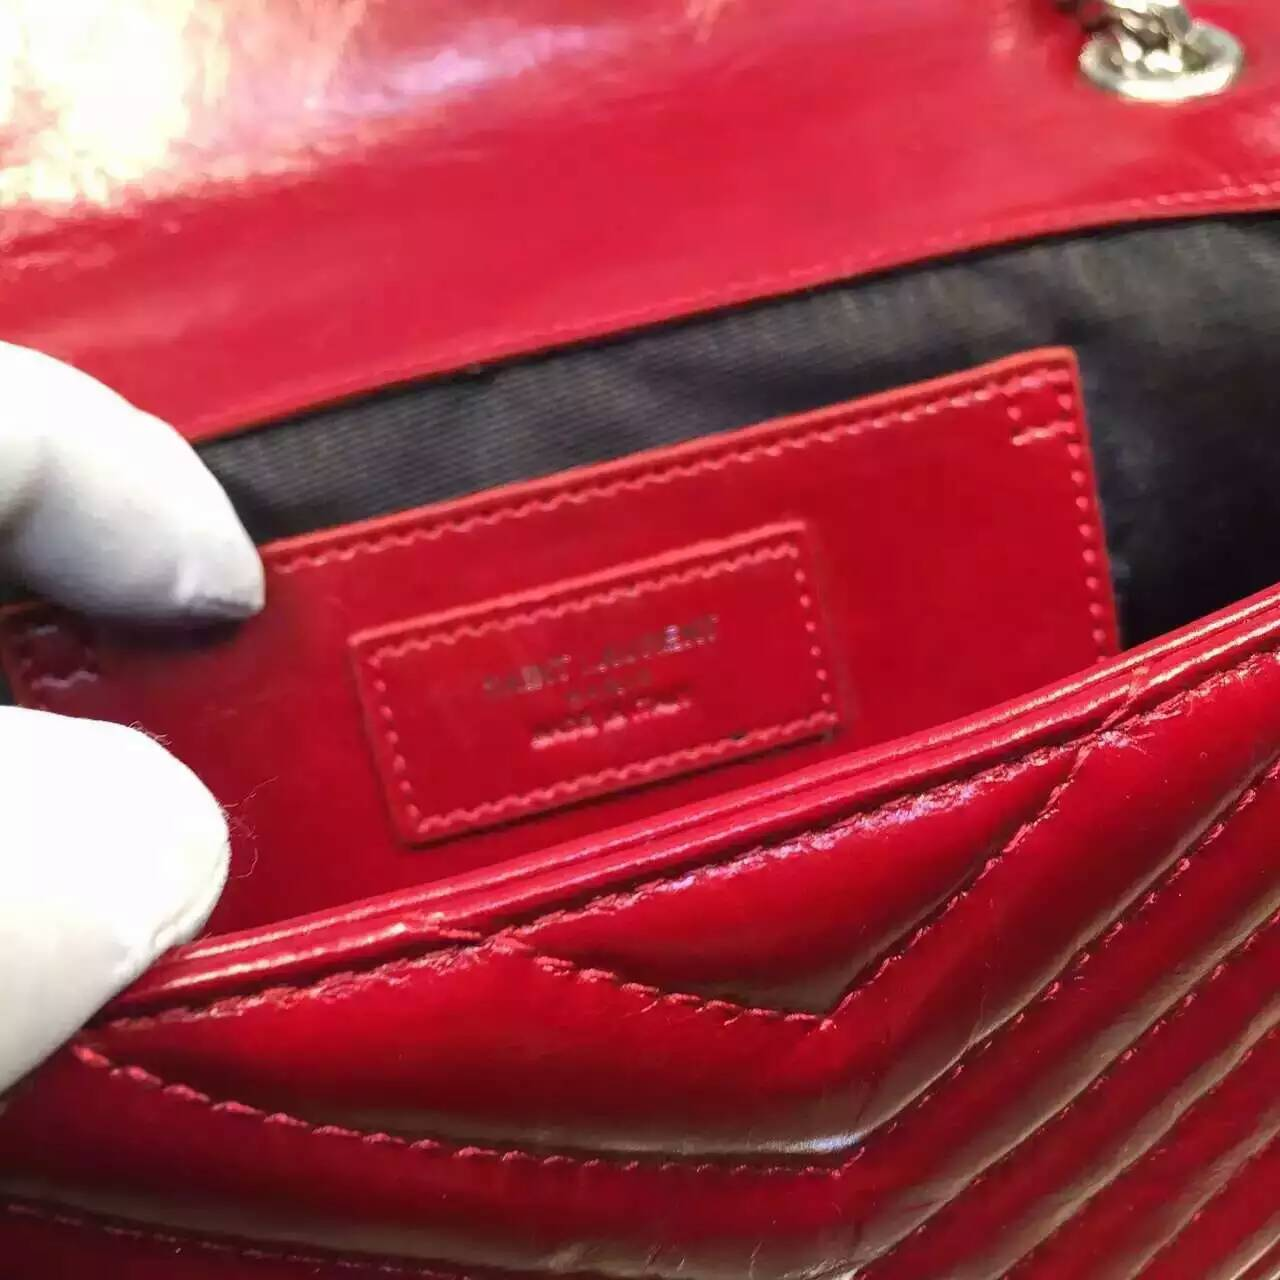 2016 Cheap YSL Out Sale with Free Shipping-Saint Laurent Classic Medium Baby Monogram Satchel in Red Matelasse Leather Silver